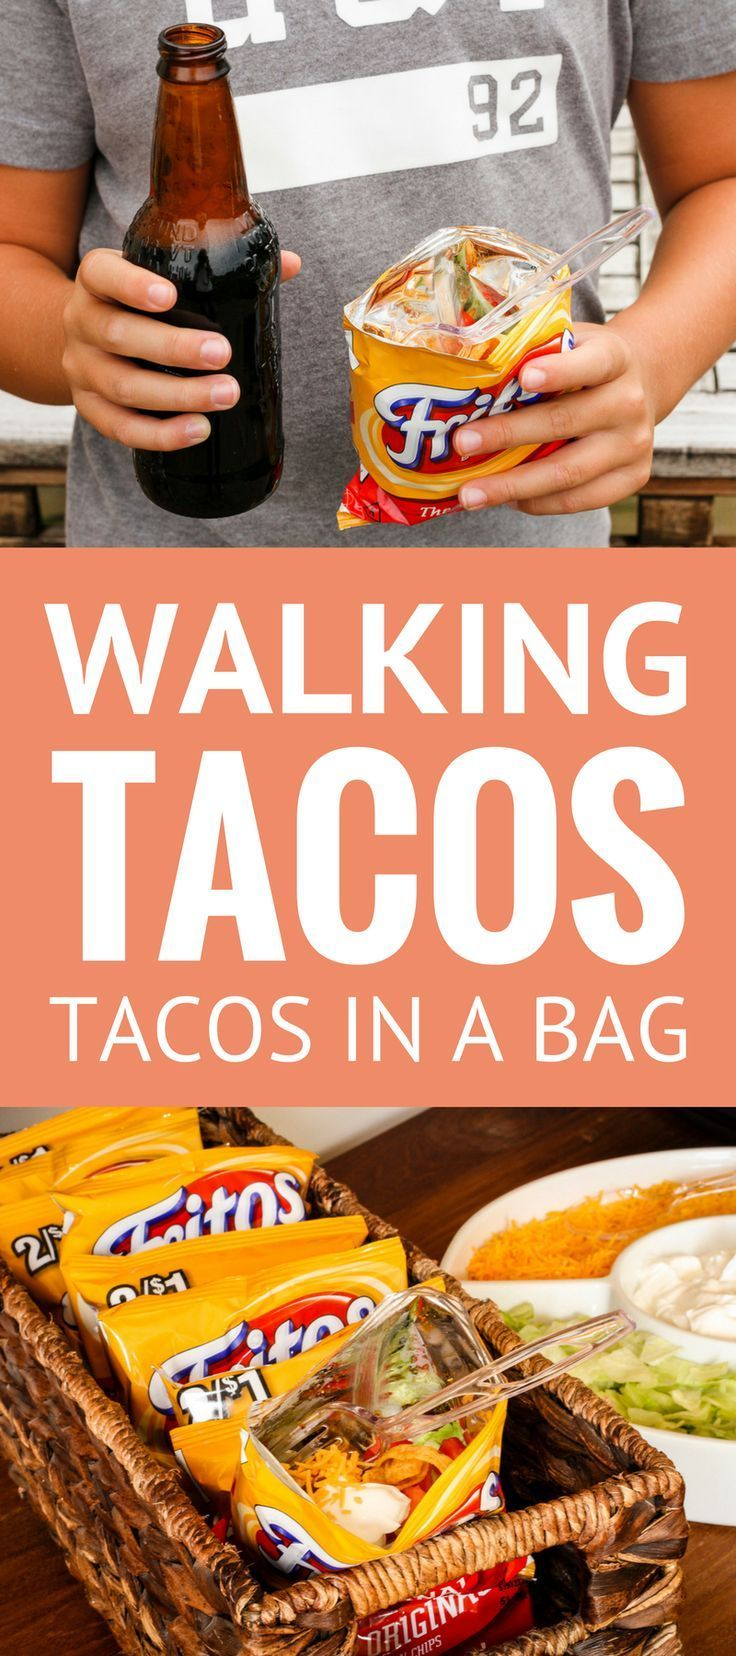 Walking Tacos Recipe -- Pinned over 140,000 times! These little tacos in a bag are equally perfect for game day get togethers or busy school nights, even camping… So simple and easy to make! | taco in a bag | how to make walking tacos | frito chili pie |  https://uk.pinterest.com/uksportoutdoors/bags-and-packs/pins/